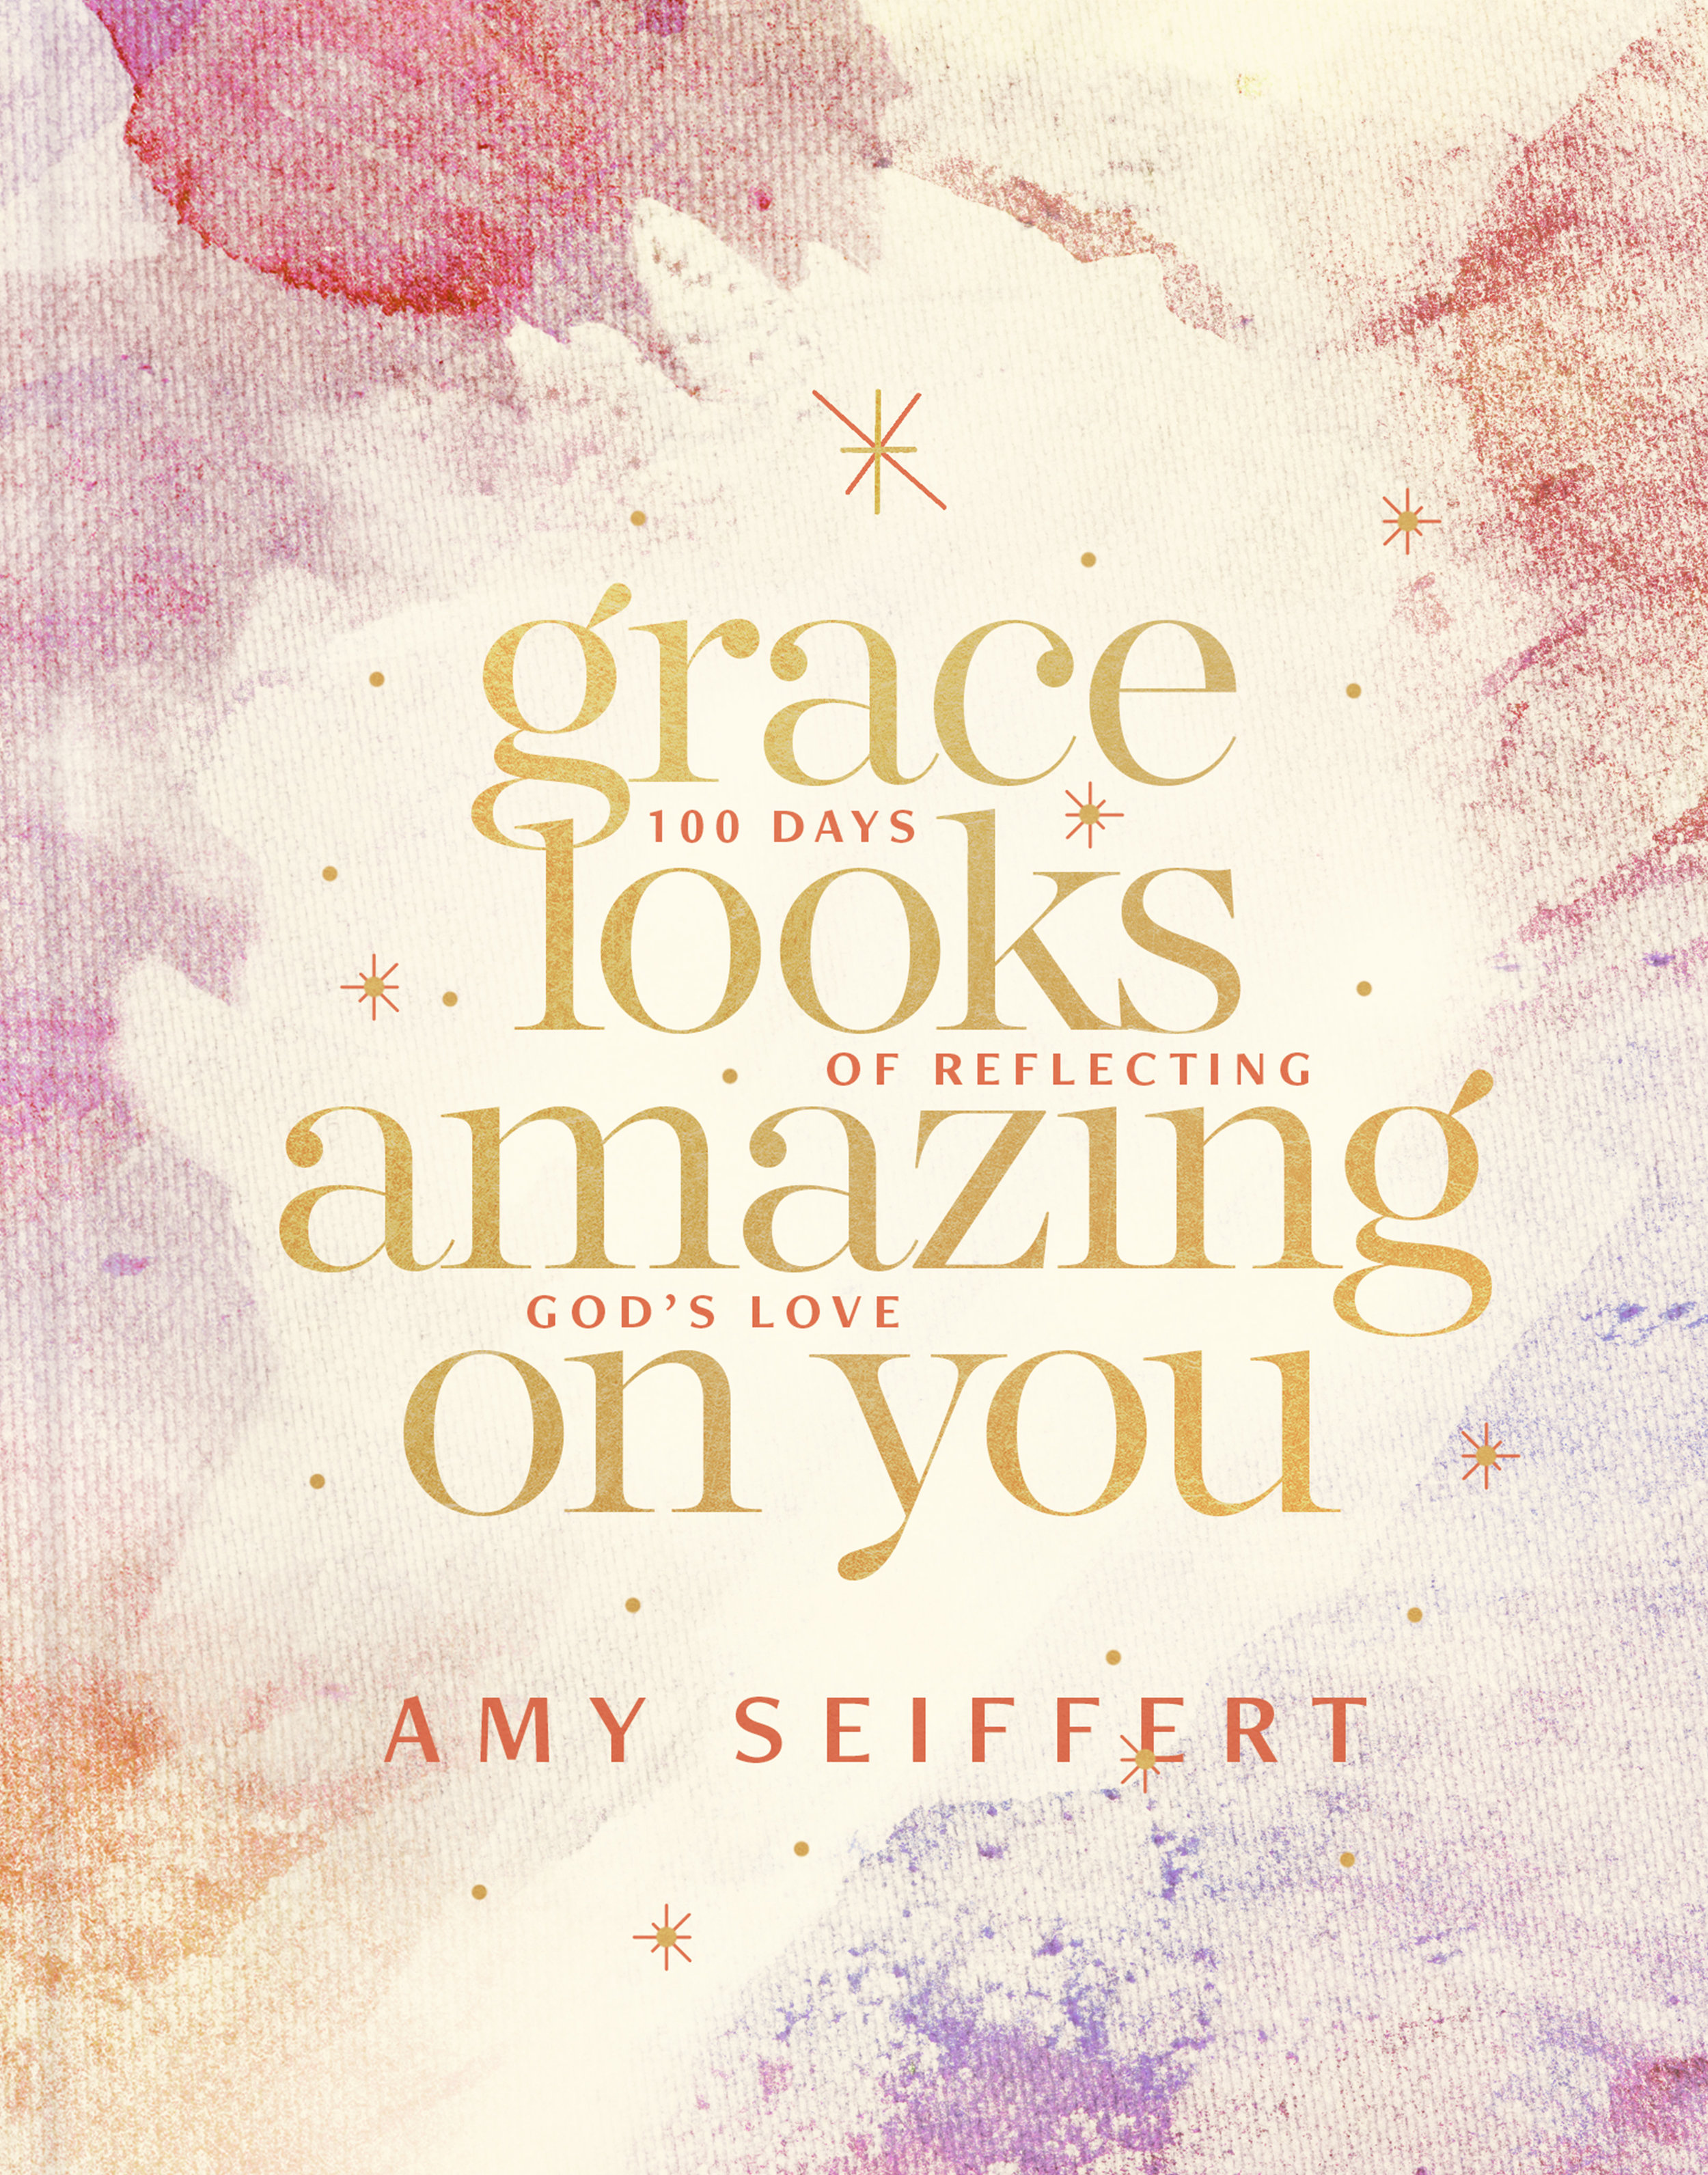 Coming Soon! - What if today is the perfect time to notice God's grace in one another?Women are so often weighed down by comparison, anxiety, and fear that the idea that grace could look amazing on them feels unbelievable. But all around us are flashes of grace, shining examples of God.Amy Seiffert says it's the every day moments that Jesus shines through: making time for a friend even when you your to-do list is pages long, apologizing to your neighbor when you don't want to admit you were wrong, opening the Bible when your soul feels hollow and empty.A perfect gift to affirm and encourage women, Grace Looks Amazing on You is a timeless Christian message packed with personal story and reflection, scripture, and deep biblical truth. This 100 Day devotion will help you change your perspective so you can confidently radiate the grace of Christ.